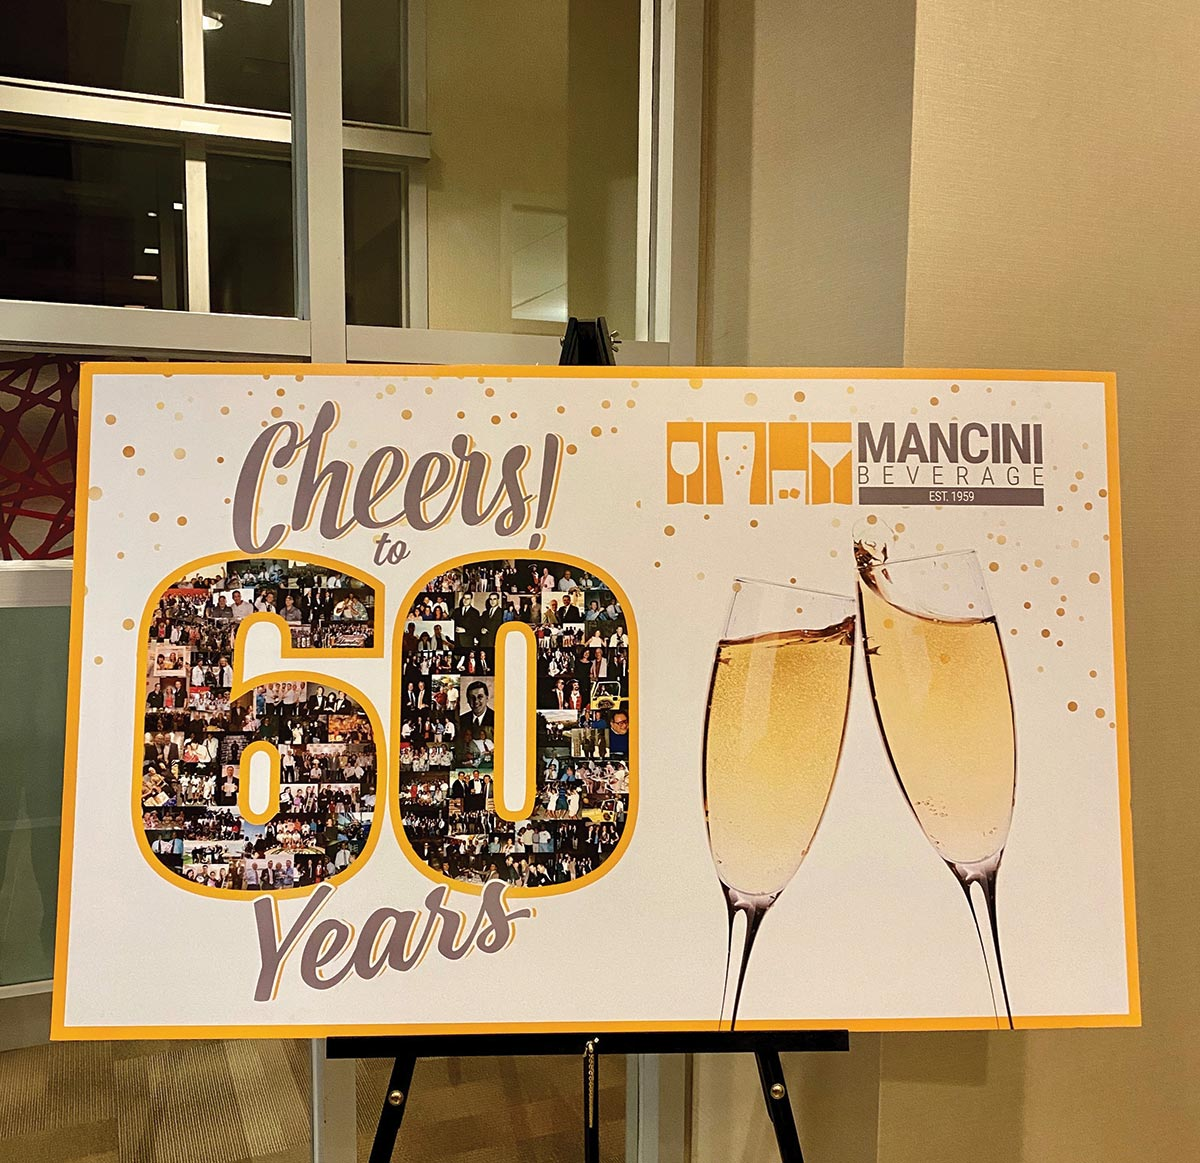 Mancini Beverage Celebrates 60 Years of Service